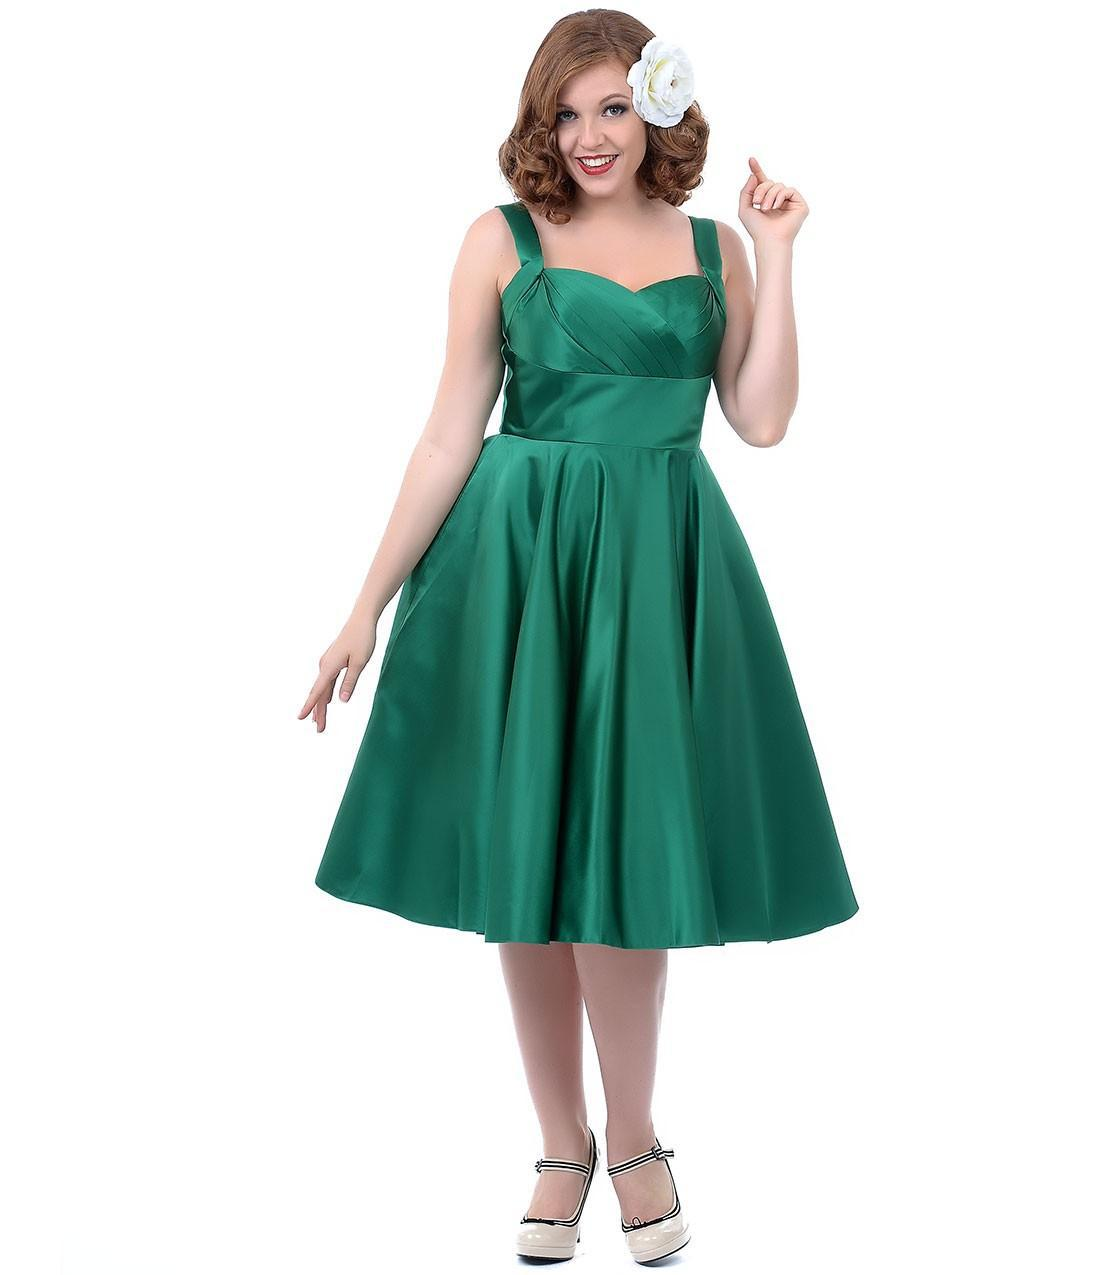 Plus Size Party Dresses - your ticket to happy night